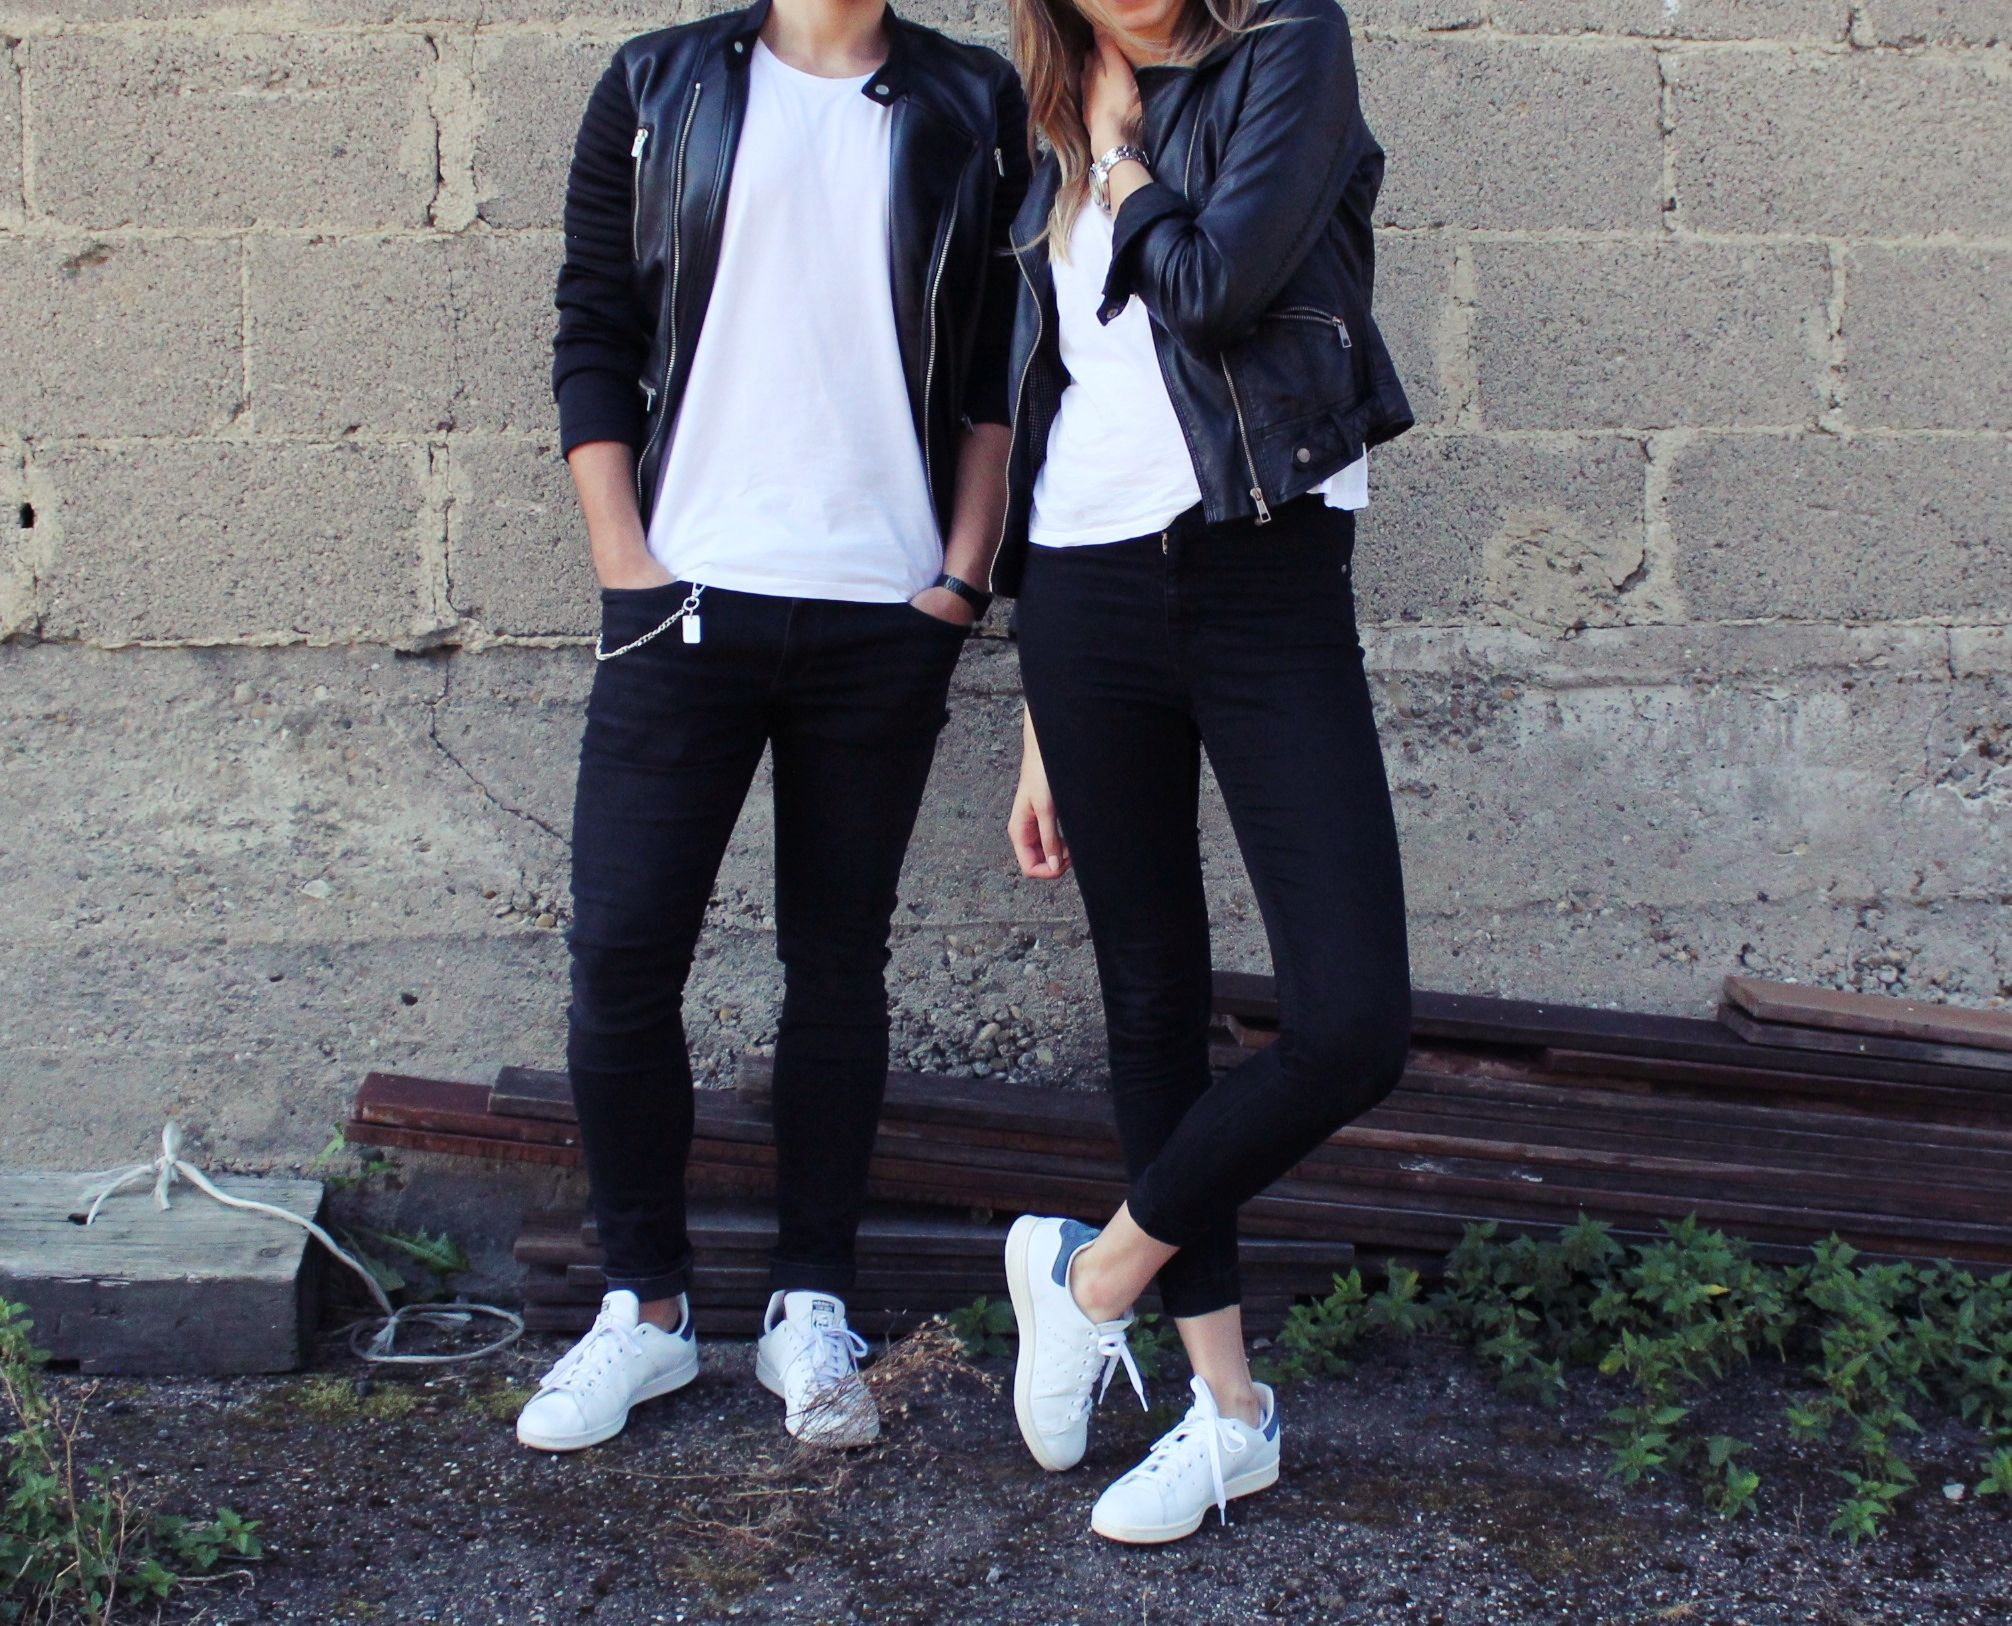 beautiful married couple outfits